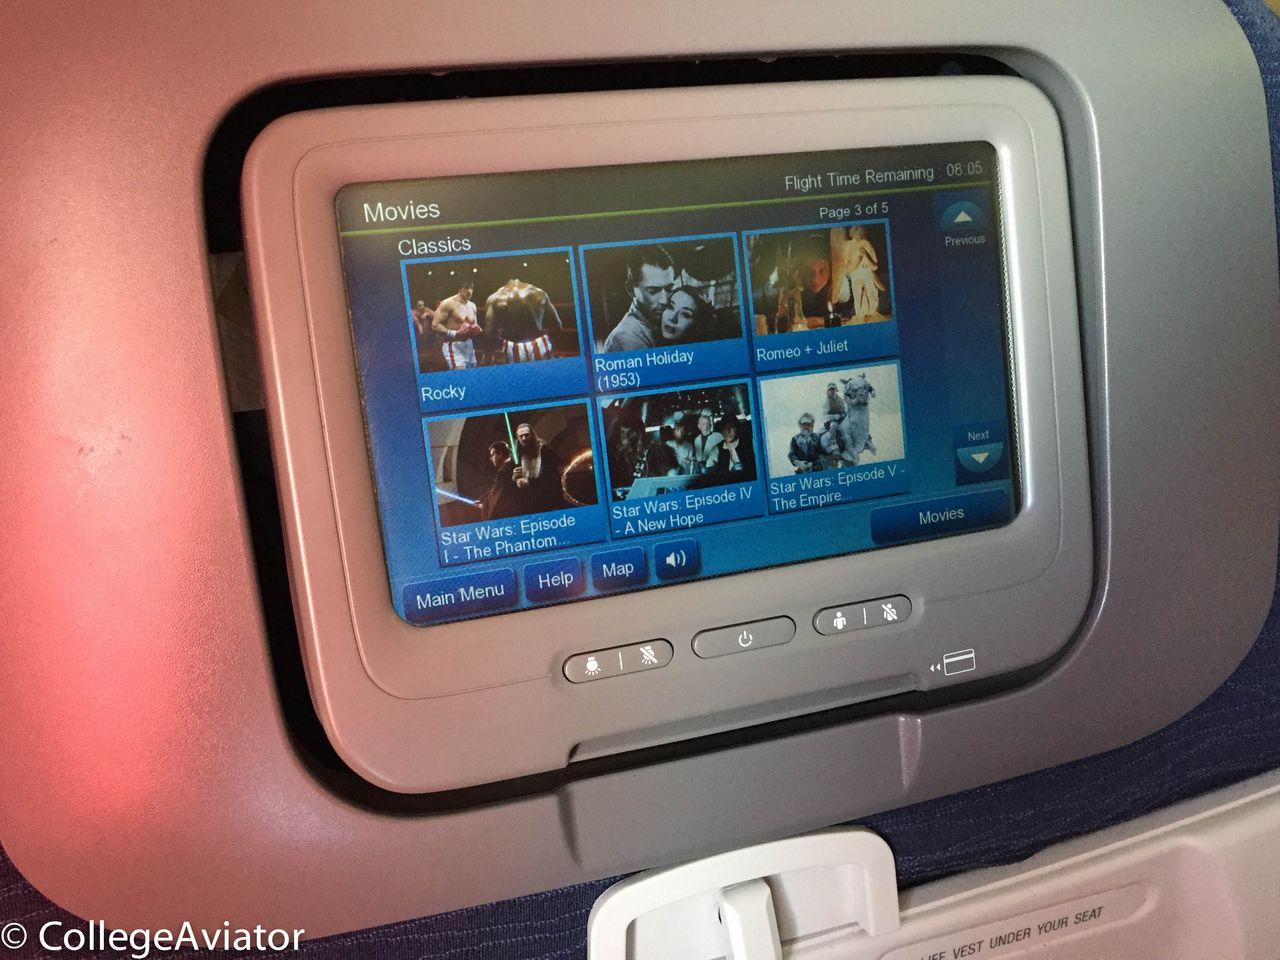 Review of United flight from Munich to Chicago in Economy